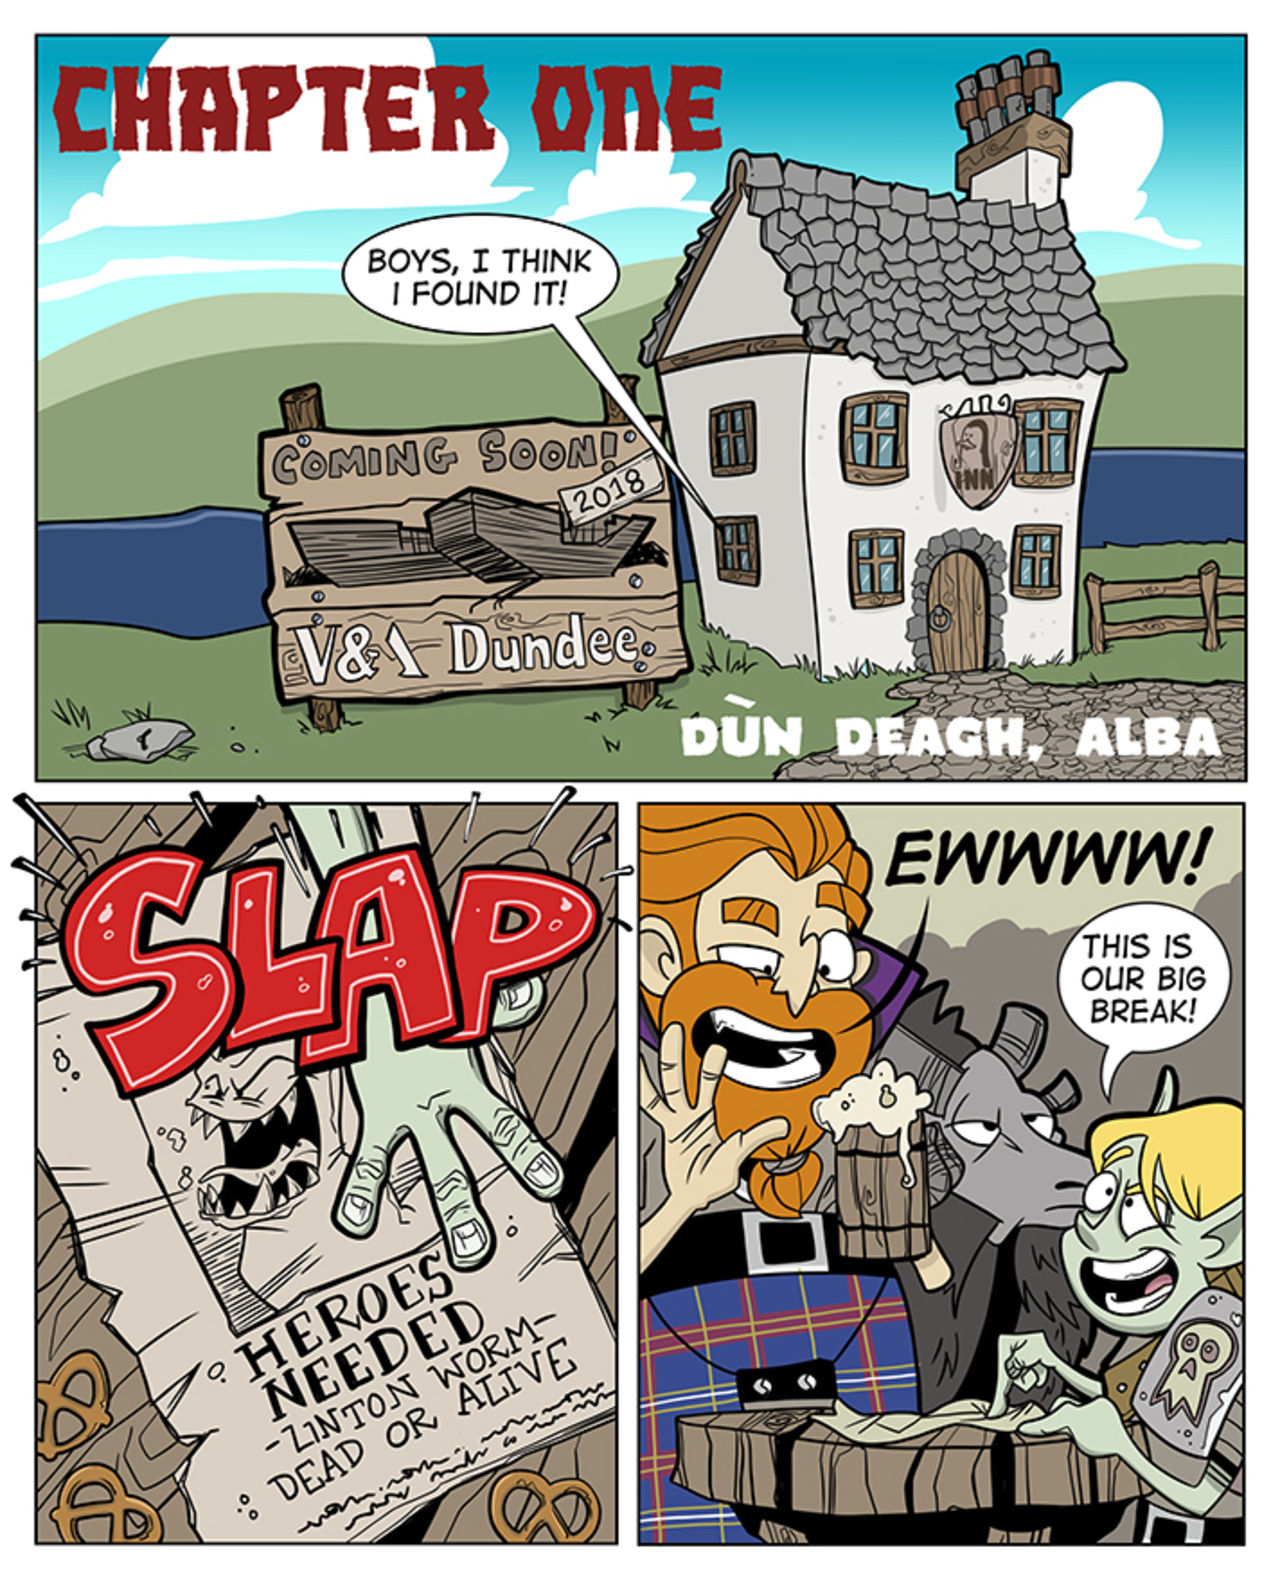 Chapter one of the webcomic, an inn sits on the water's edge in Dundee back in the olden days.  Beag slaps down a poster ad needing heroes to hunt the Linton Worm saying it's their big break.